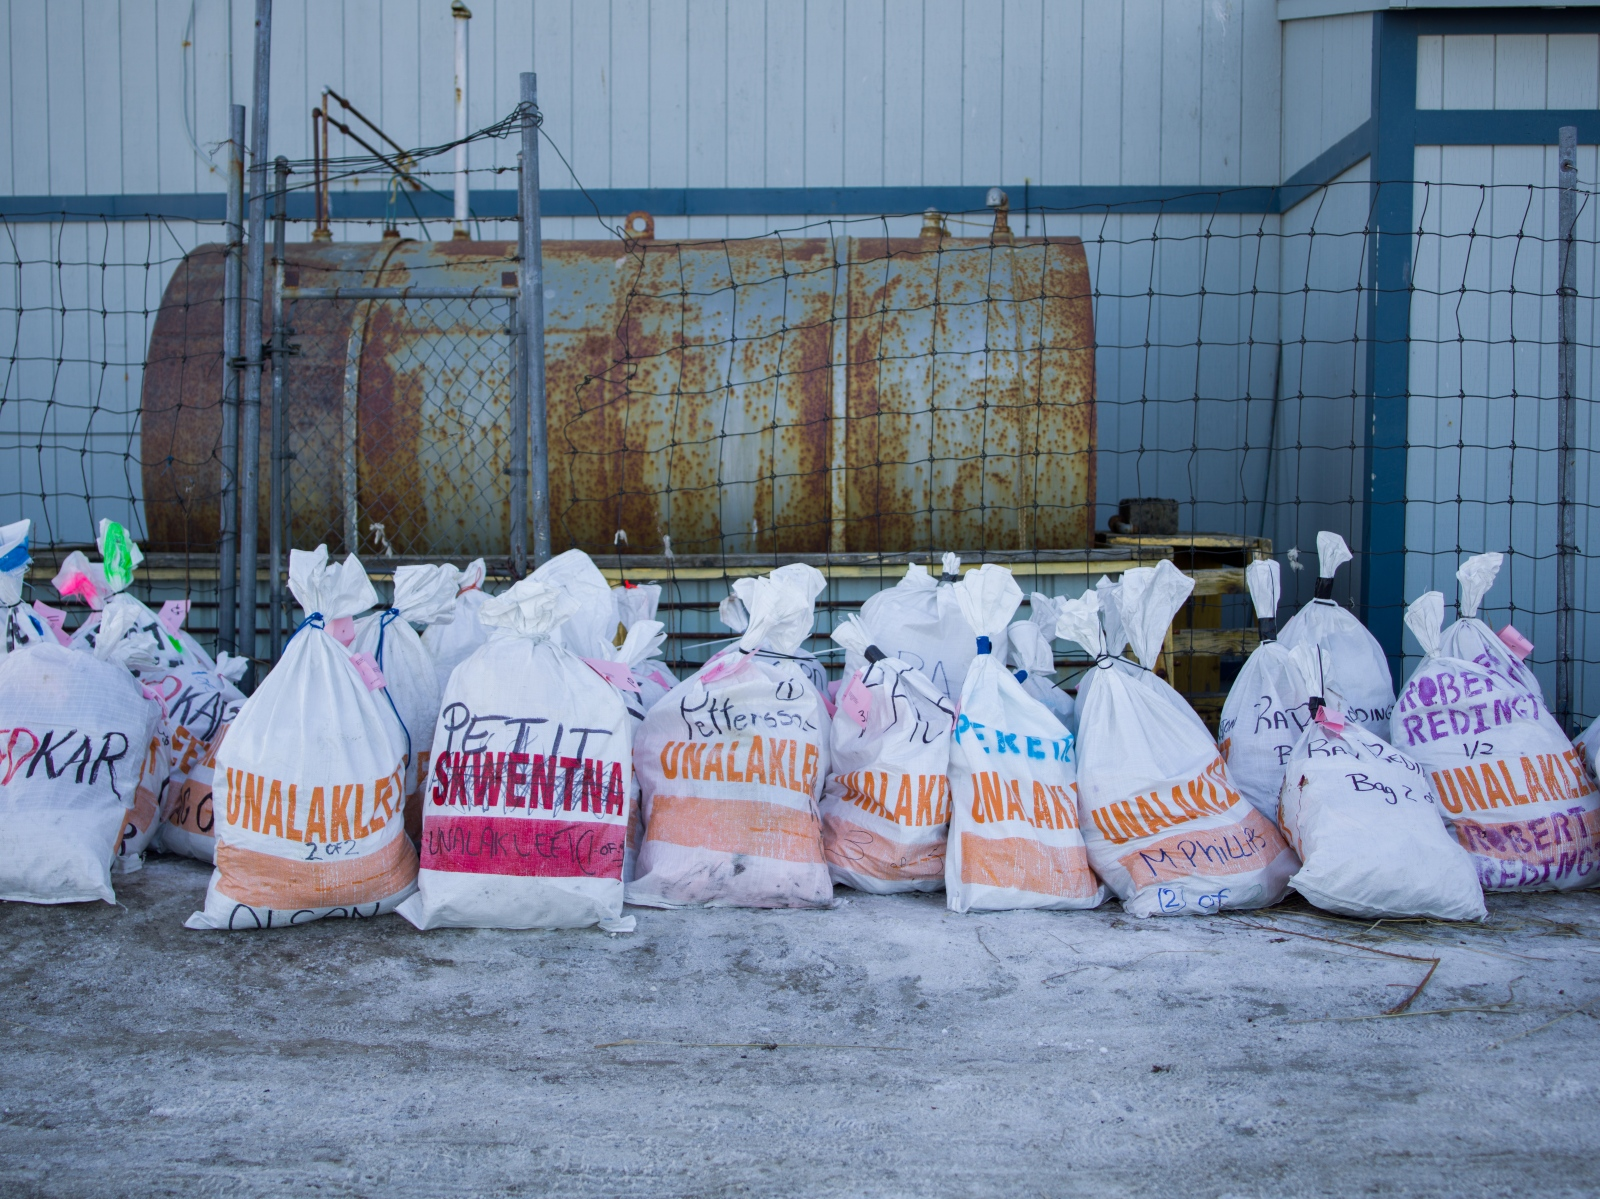 Bags of feed rest outside of Iditarod headquarters in Unalakeet, Alaska on March 12, 2016. Mushers were expected to arrive later that night.